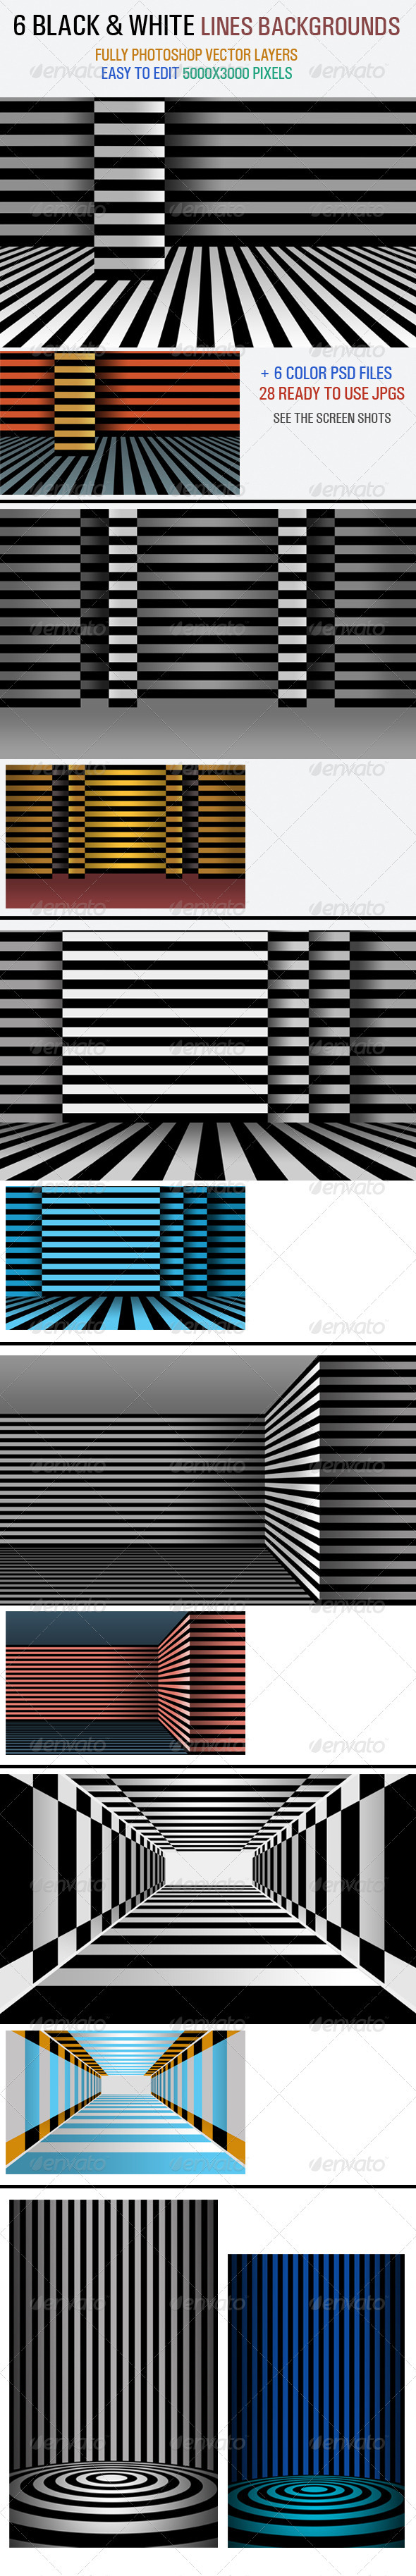 Black & White Line Backgrounds - Abstract Backgrounds